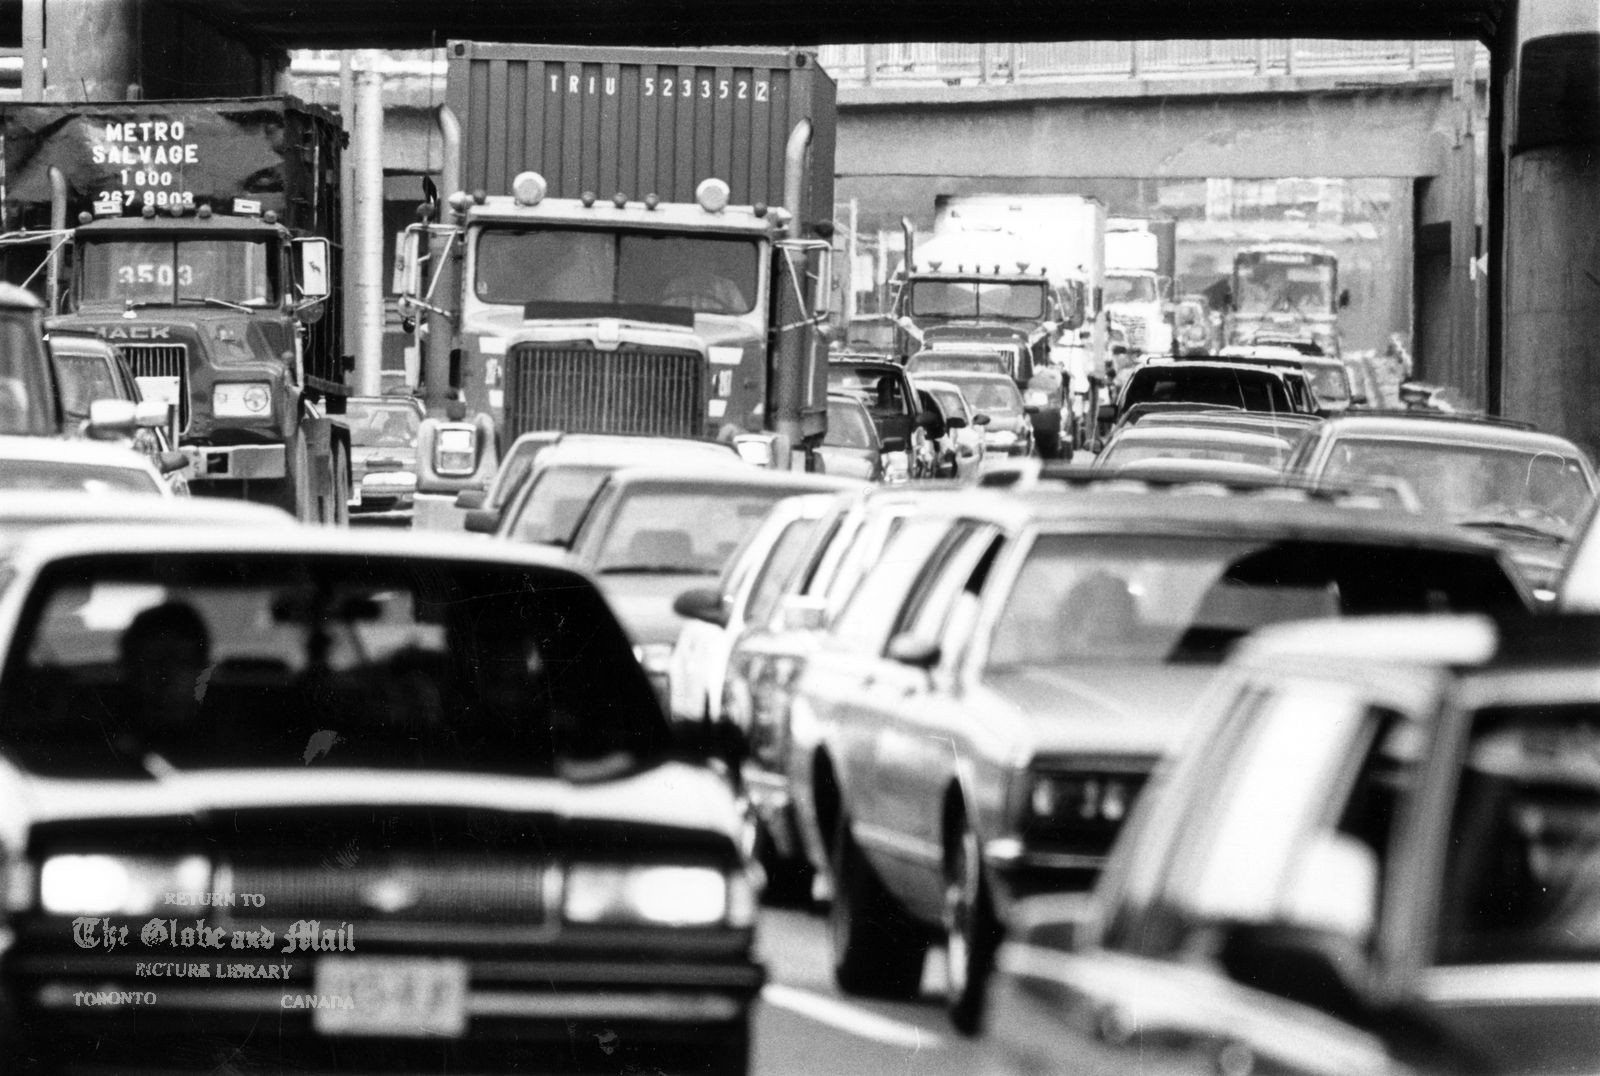 The eastbound lanes of Toronto's Gardiner Expressway were backed up to the Humber River today, July 12, 1996, what with summer road construction and partial Lake Shore Boulevard closing for this weekend's Molson Indy race. Phot by Fred Lum / The Globe and Mail. Originally published July 13, 1996